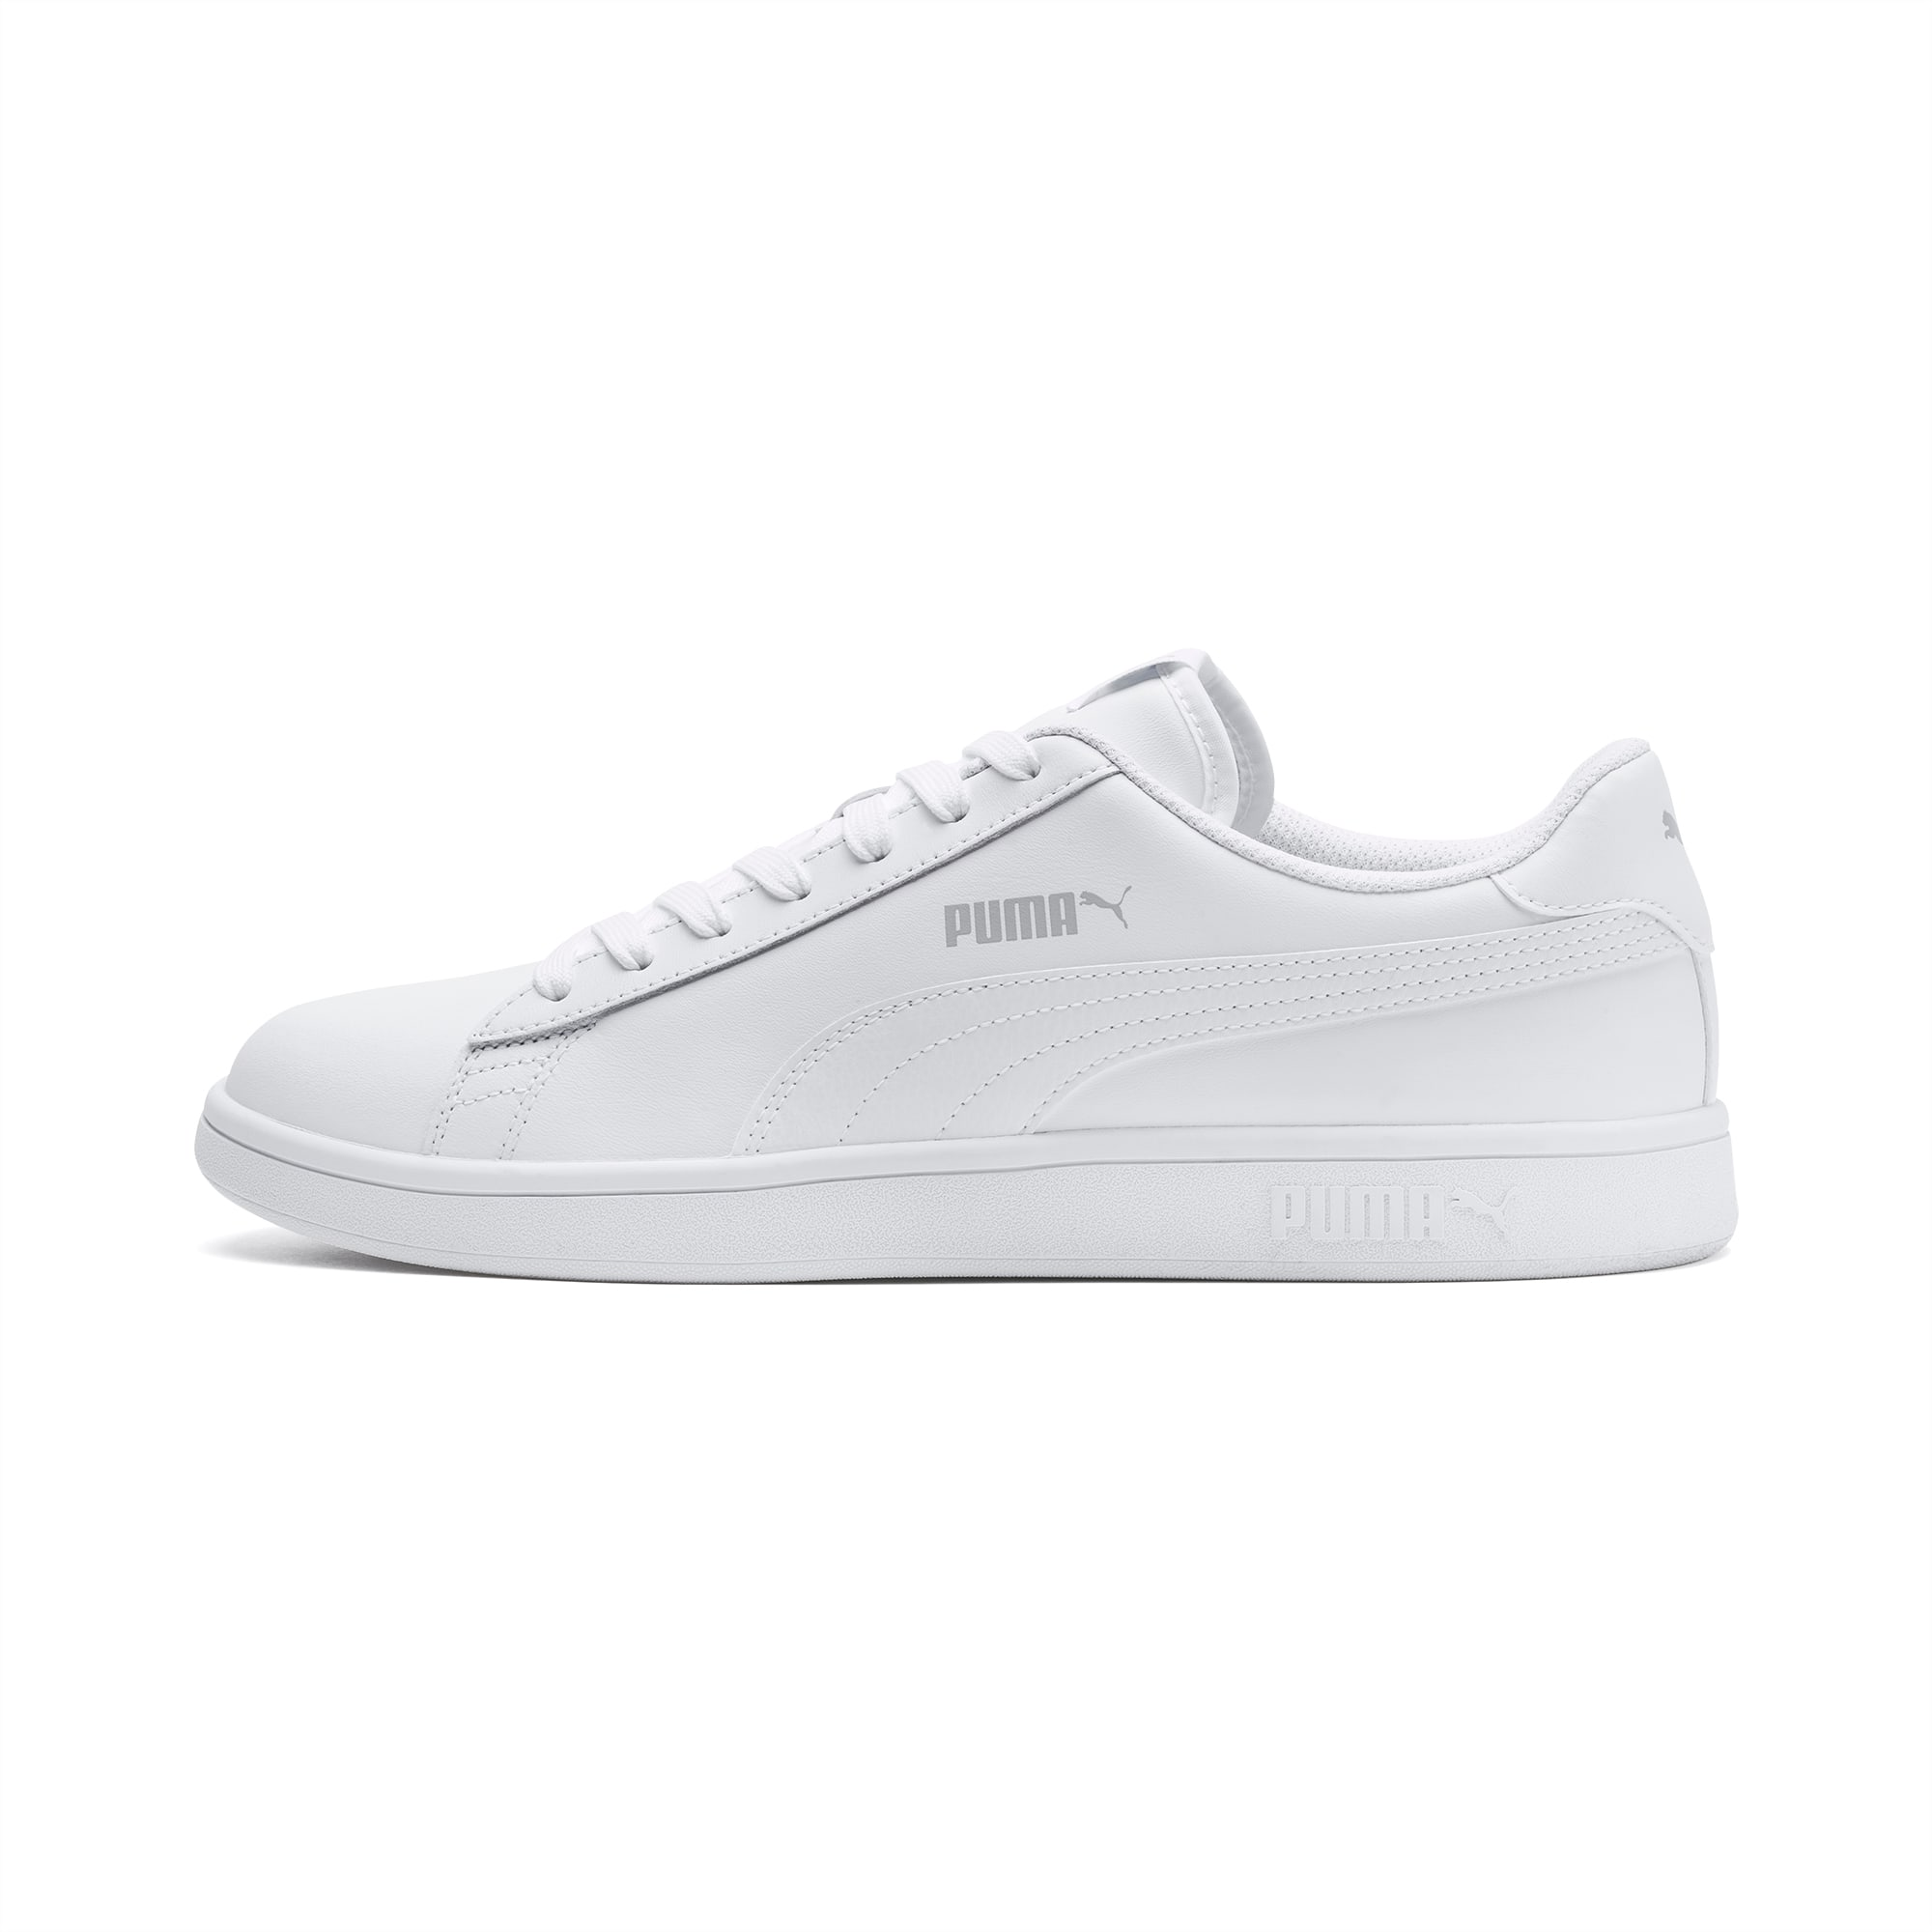 PUMA Smash v2 Men's Sneakers